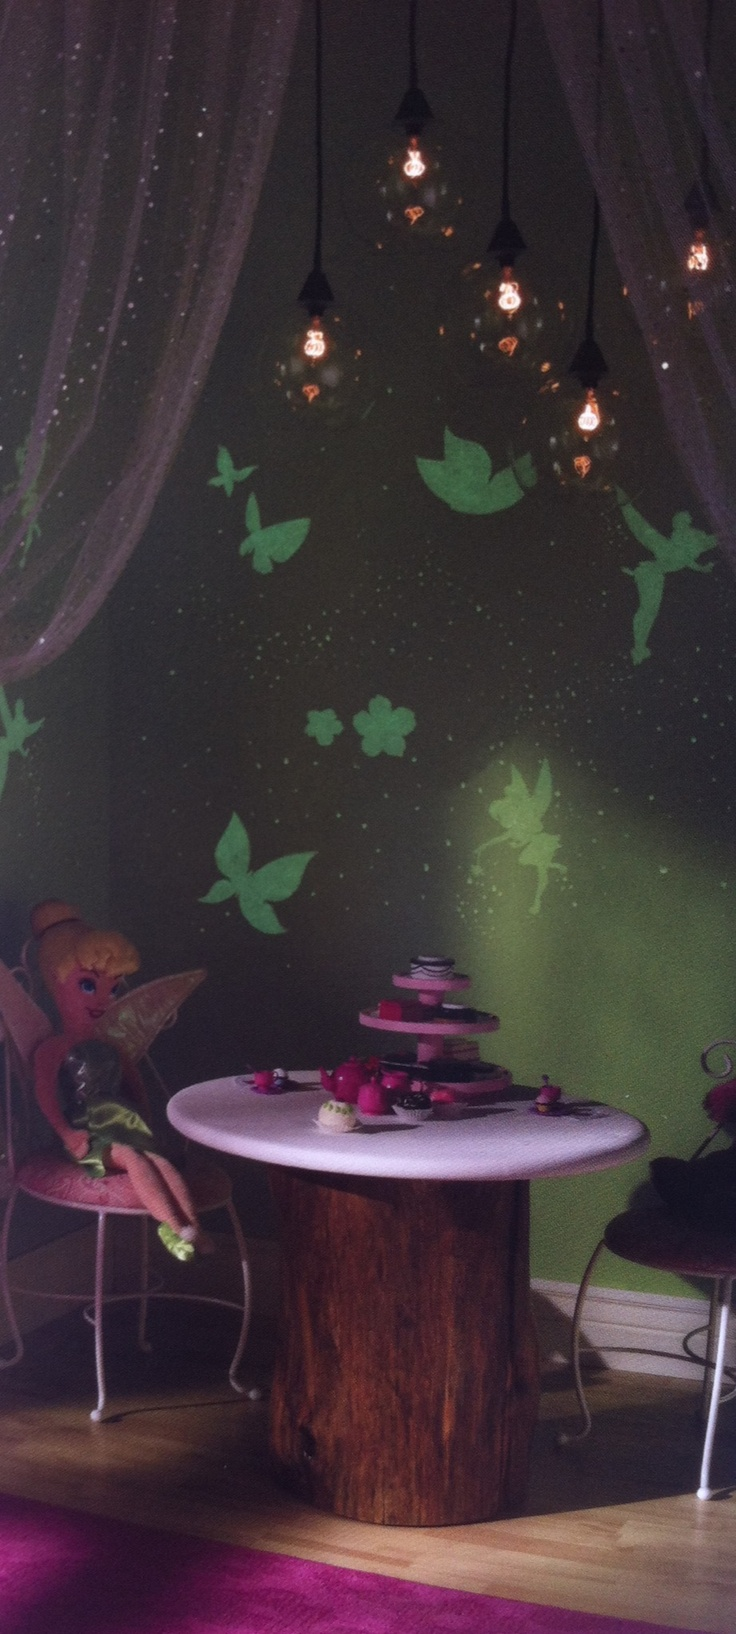 I absolutely ADORE this! Glow in the dark paint in a dark corner. Tink nook. Freaking adorable!! #peterpan #tinkerbell #disney